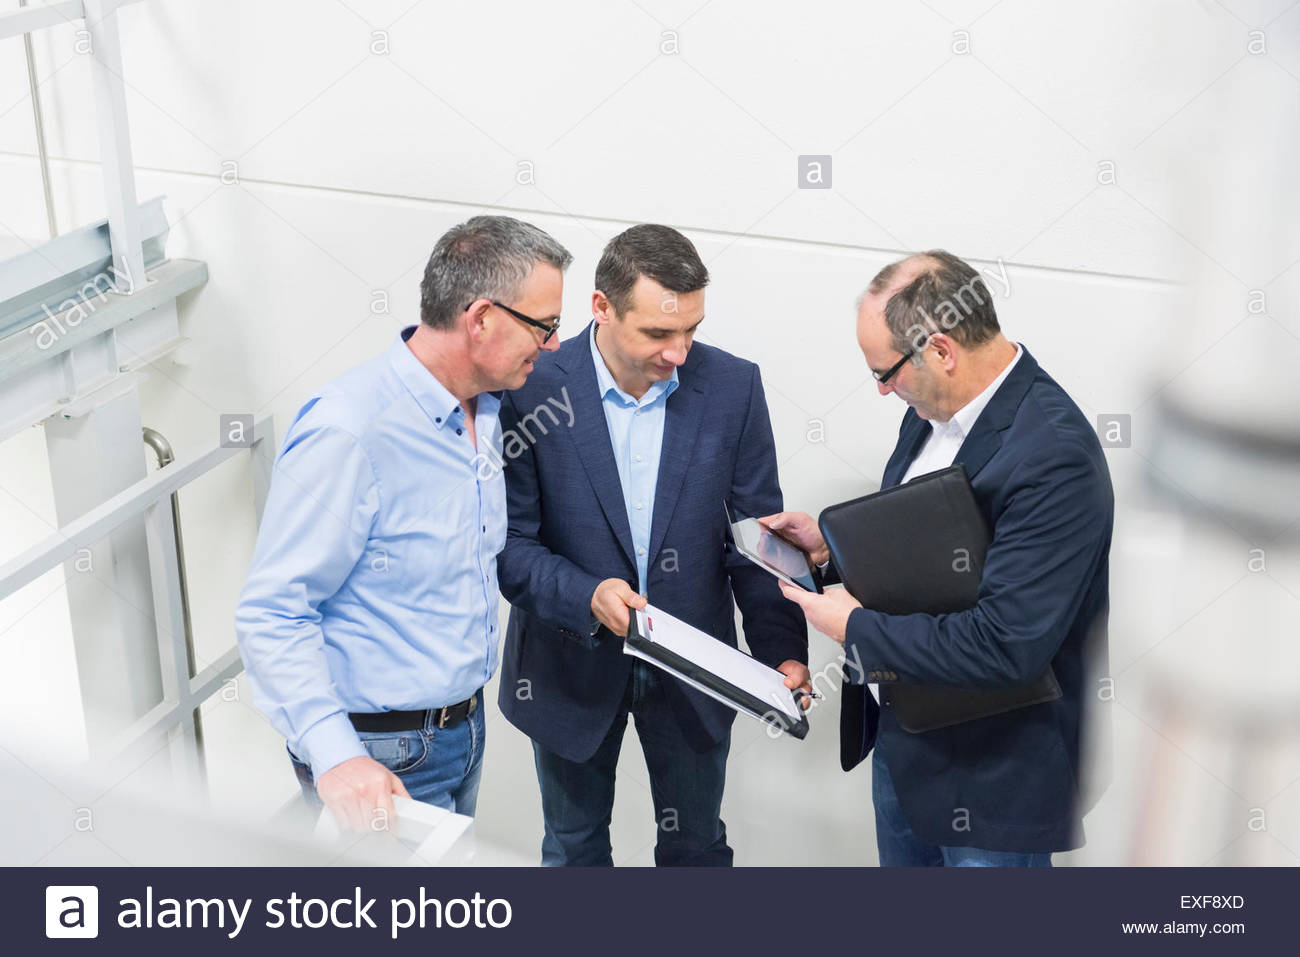 Businessmen and manager notes and digital tablet on factory stairway - Stock Image